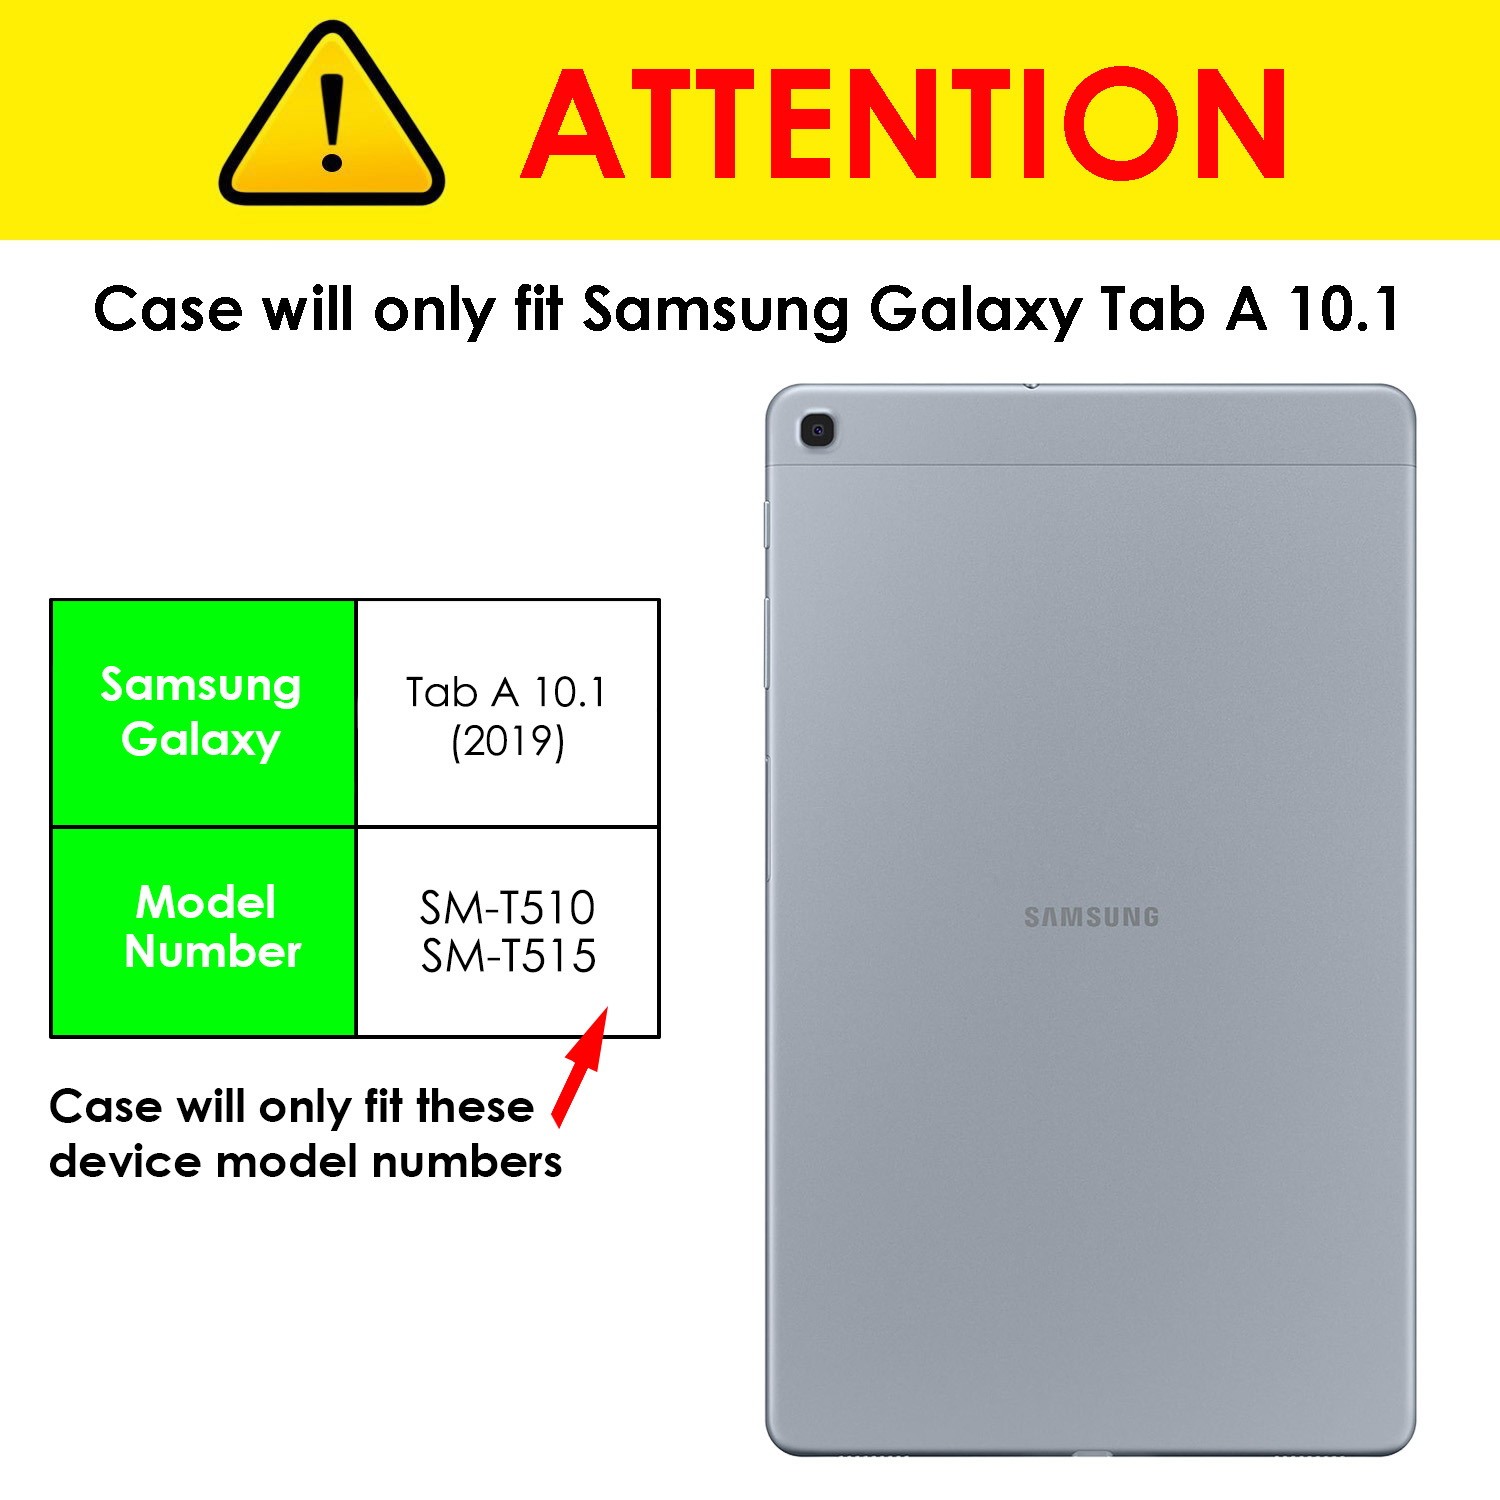 miniature 76 - Samsung Galaxy Tab A 10.1 2019 Étui Magnétique Protection & Support + Stylet